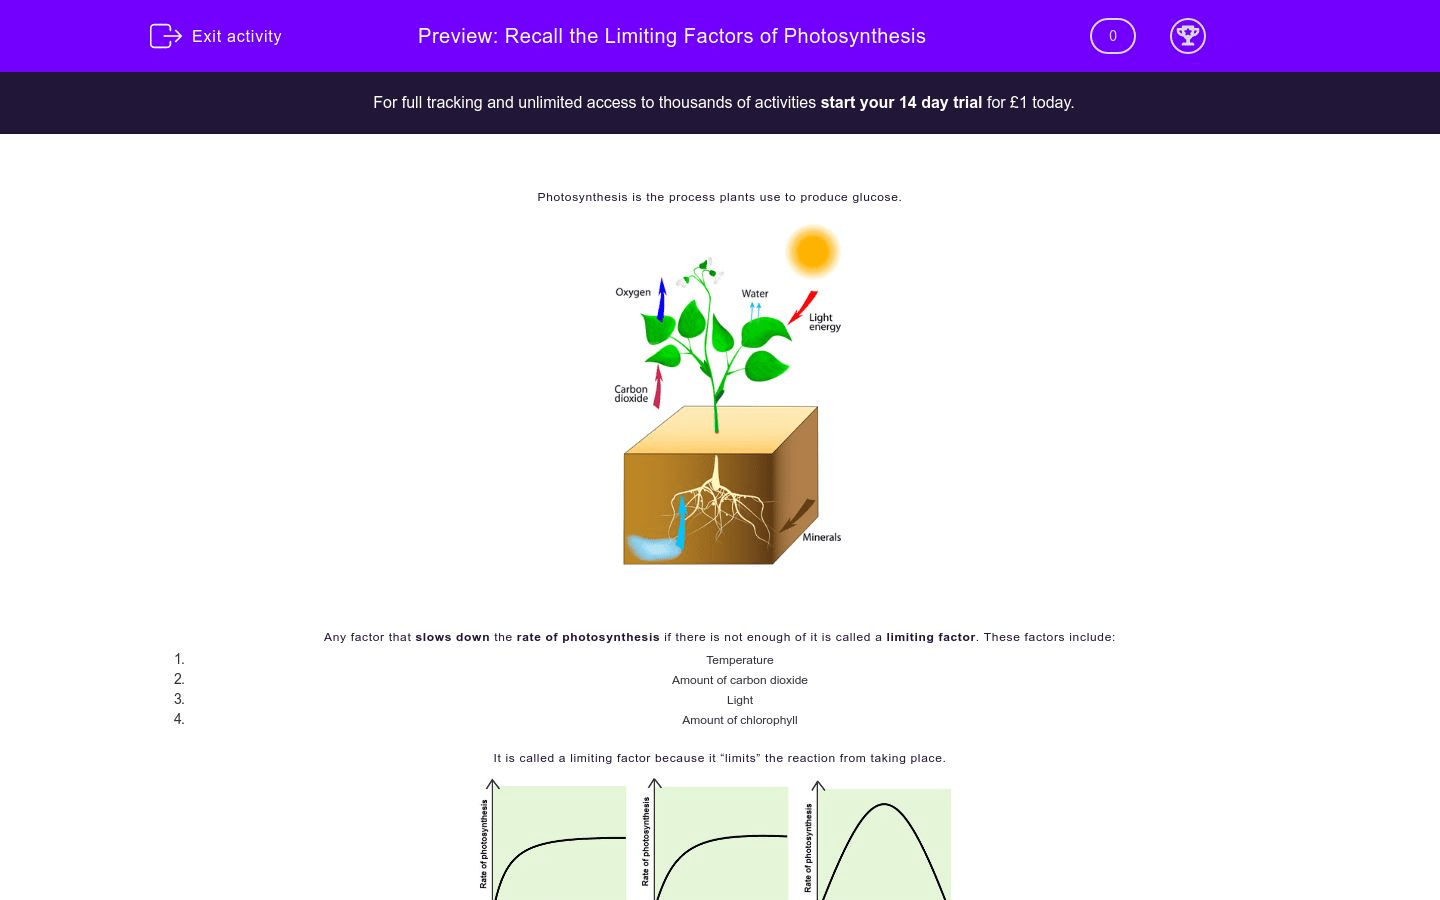 Understand The Limiting Factors Of Photosynthesis